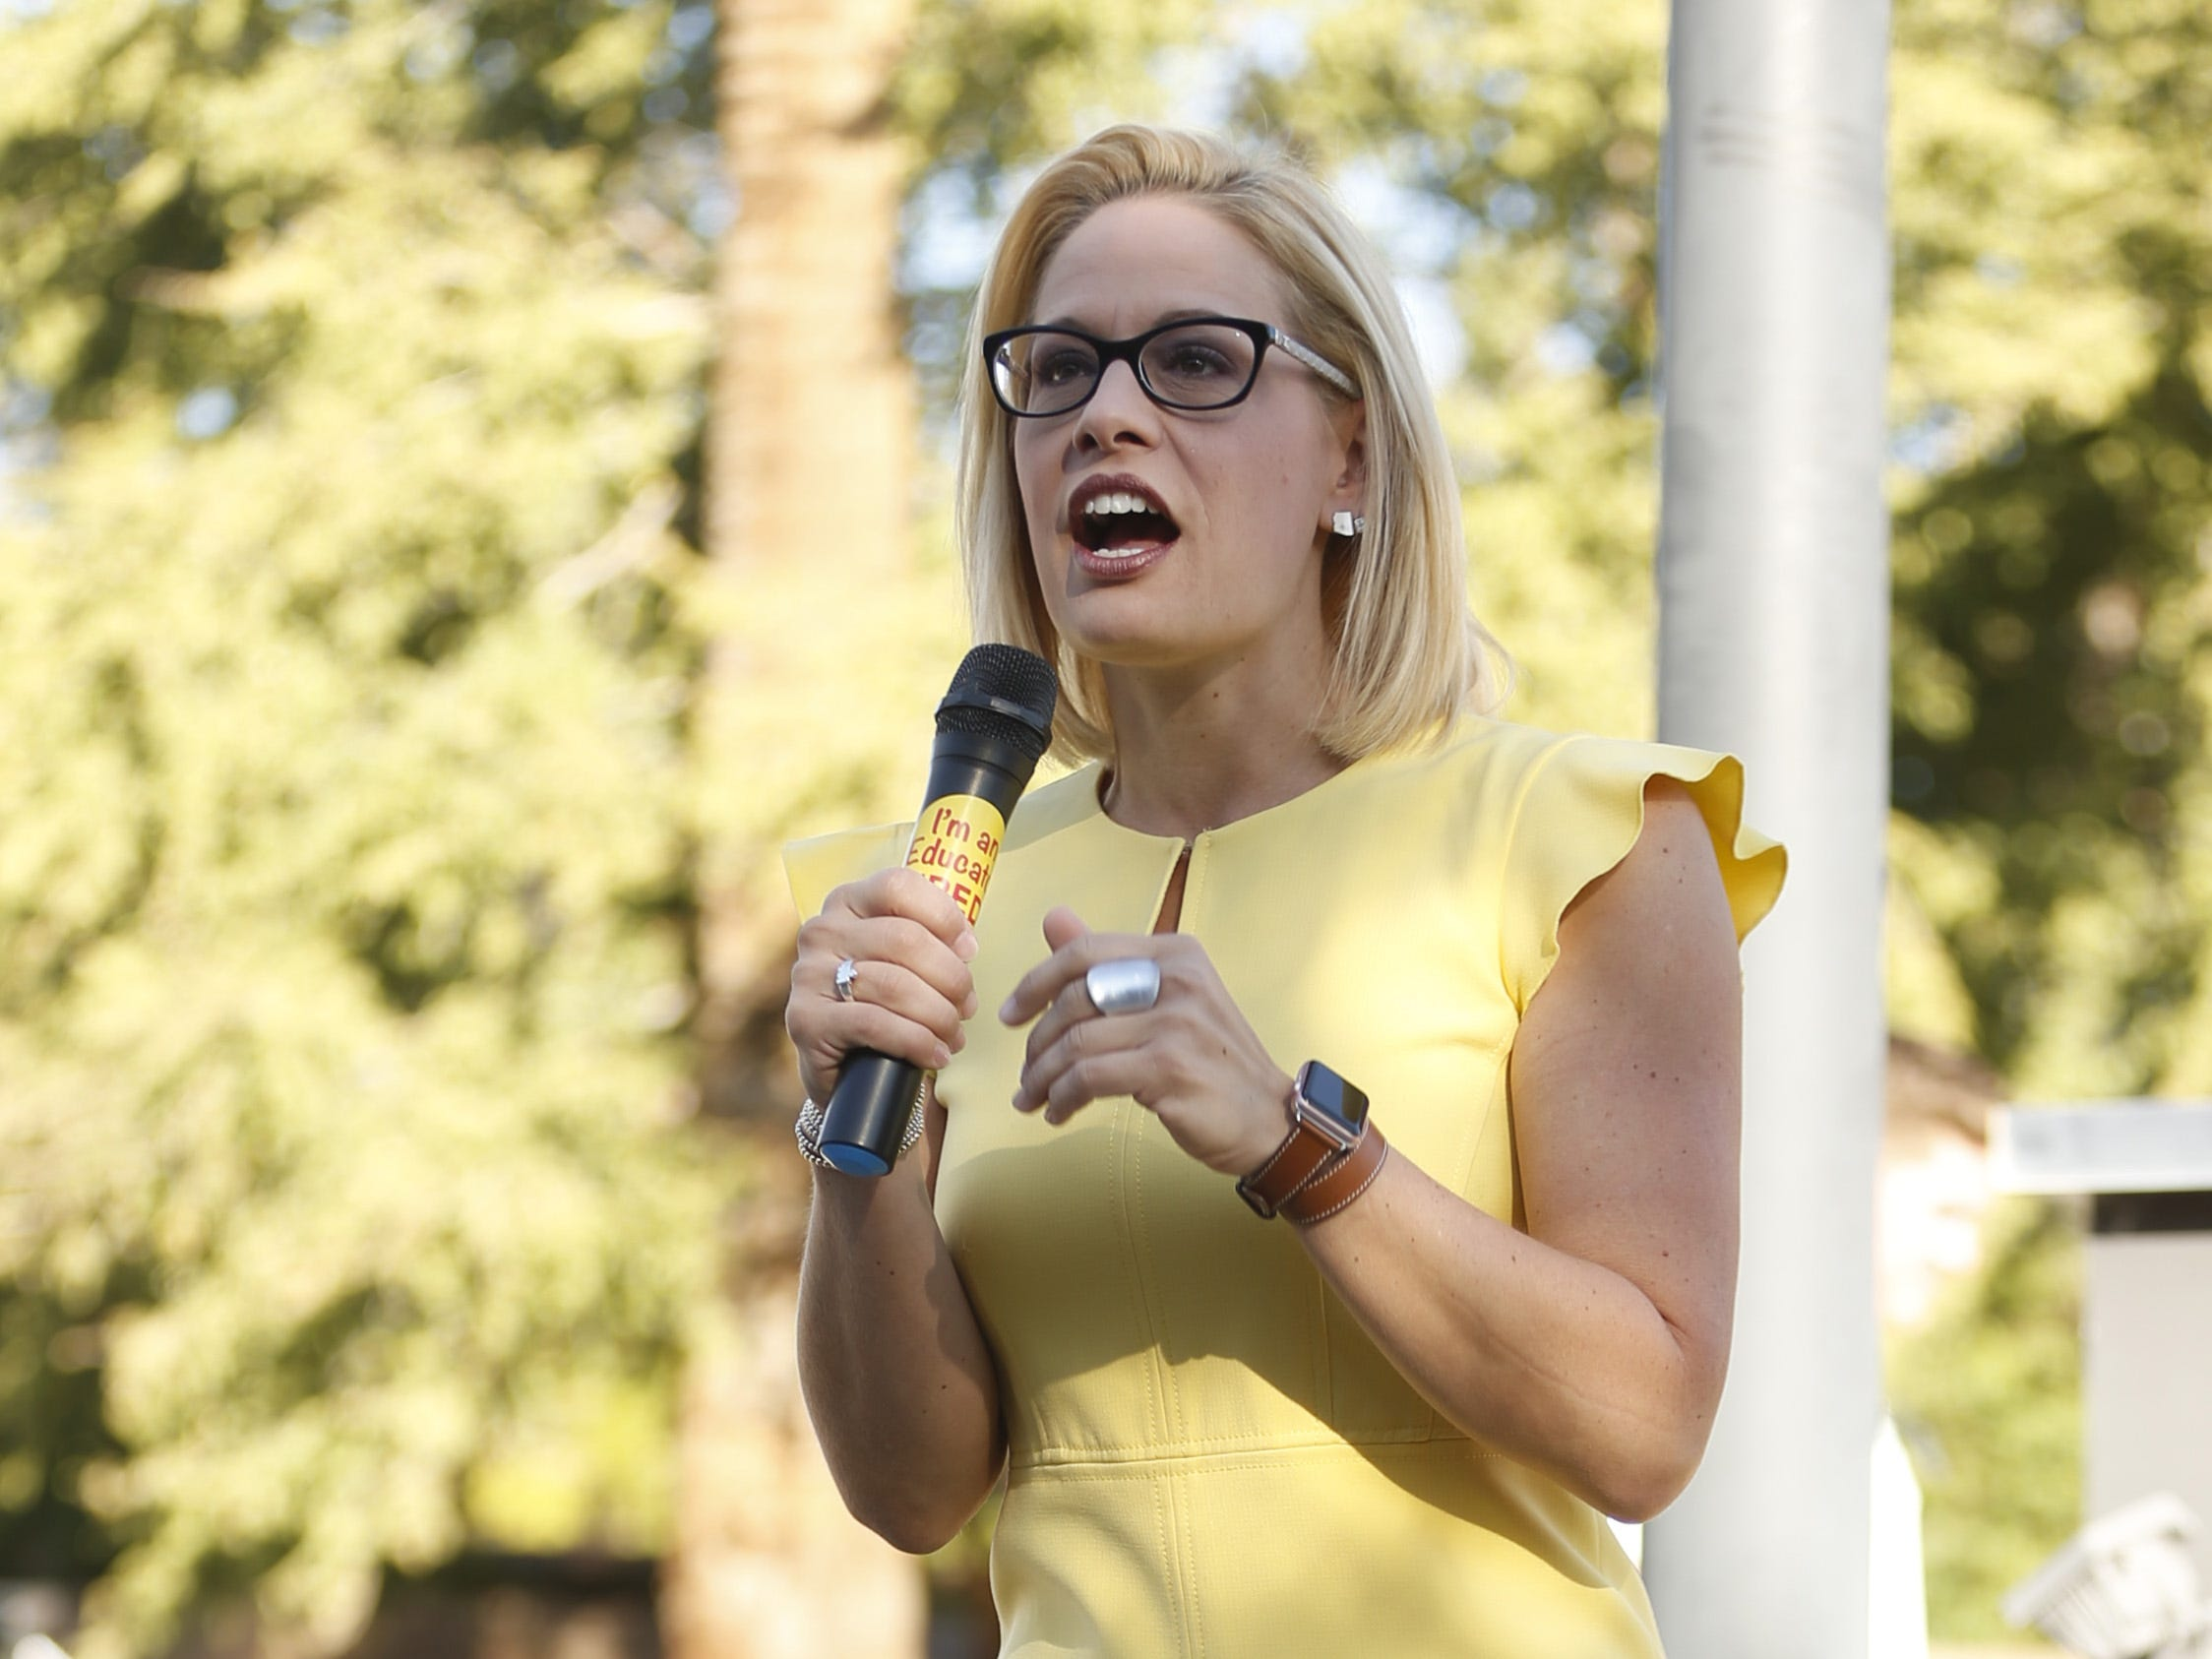 Senate candidate Kyrsten Sinema speaks during a rally outside the Arizona Education Association offices in Phoenix on November 3, 2018.